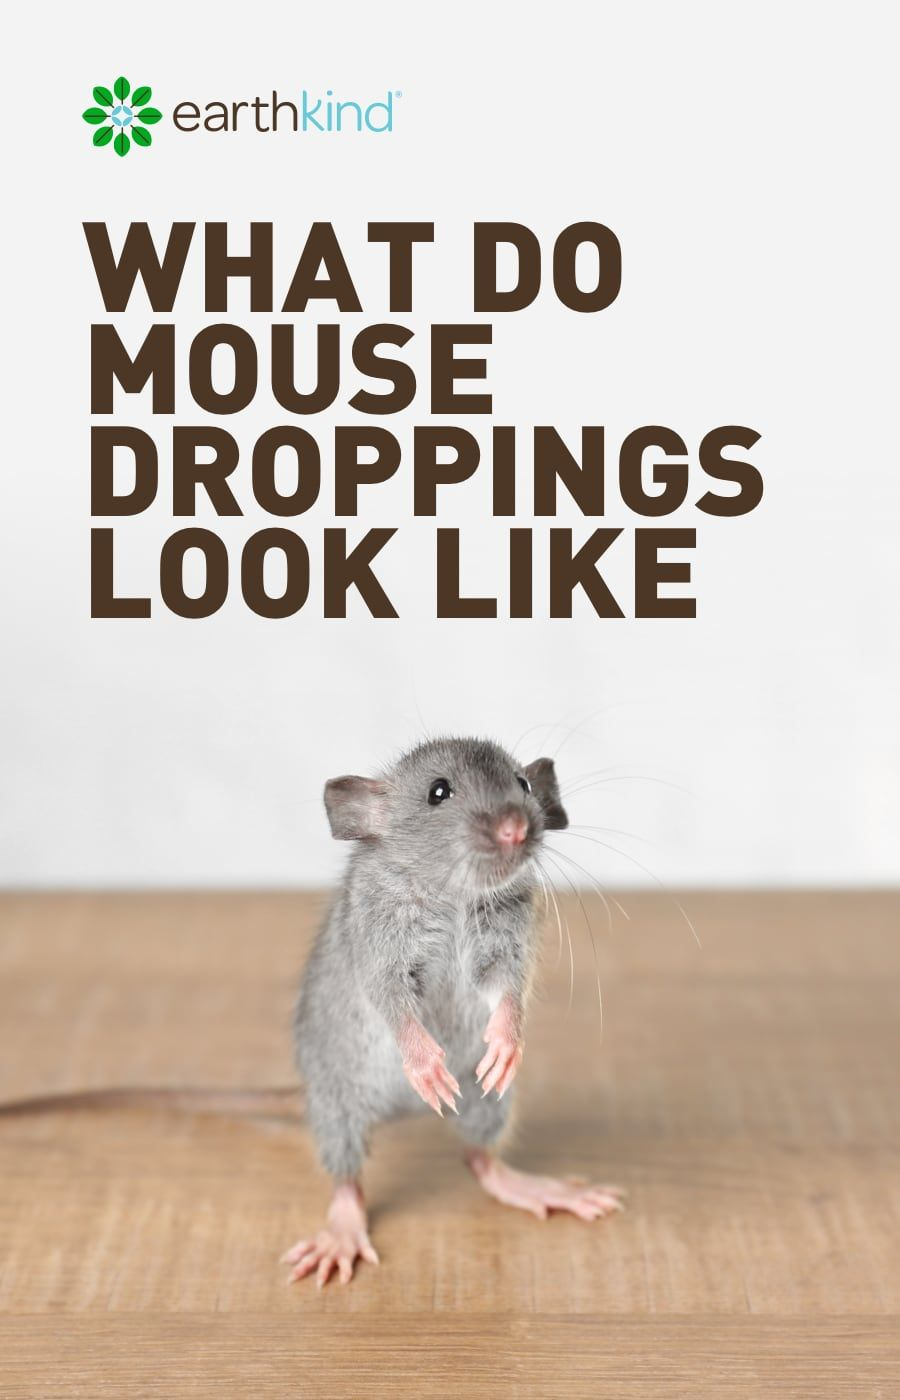 What Do Mouse Droppings Look Like How To Get Rid Of Mice Getting Rid Of Mice Mice Repellent Rodent Droppings